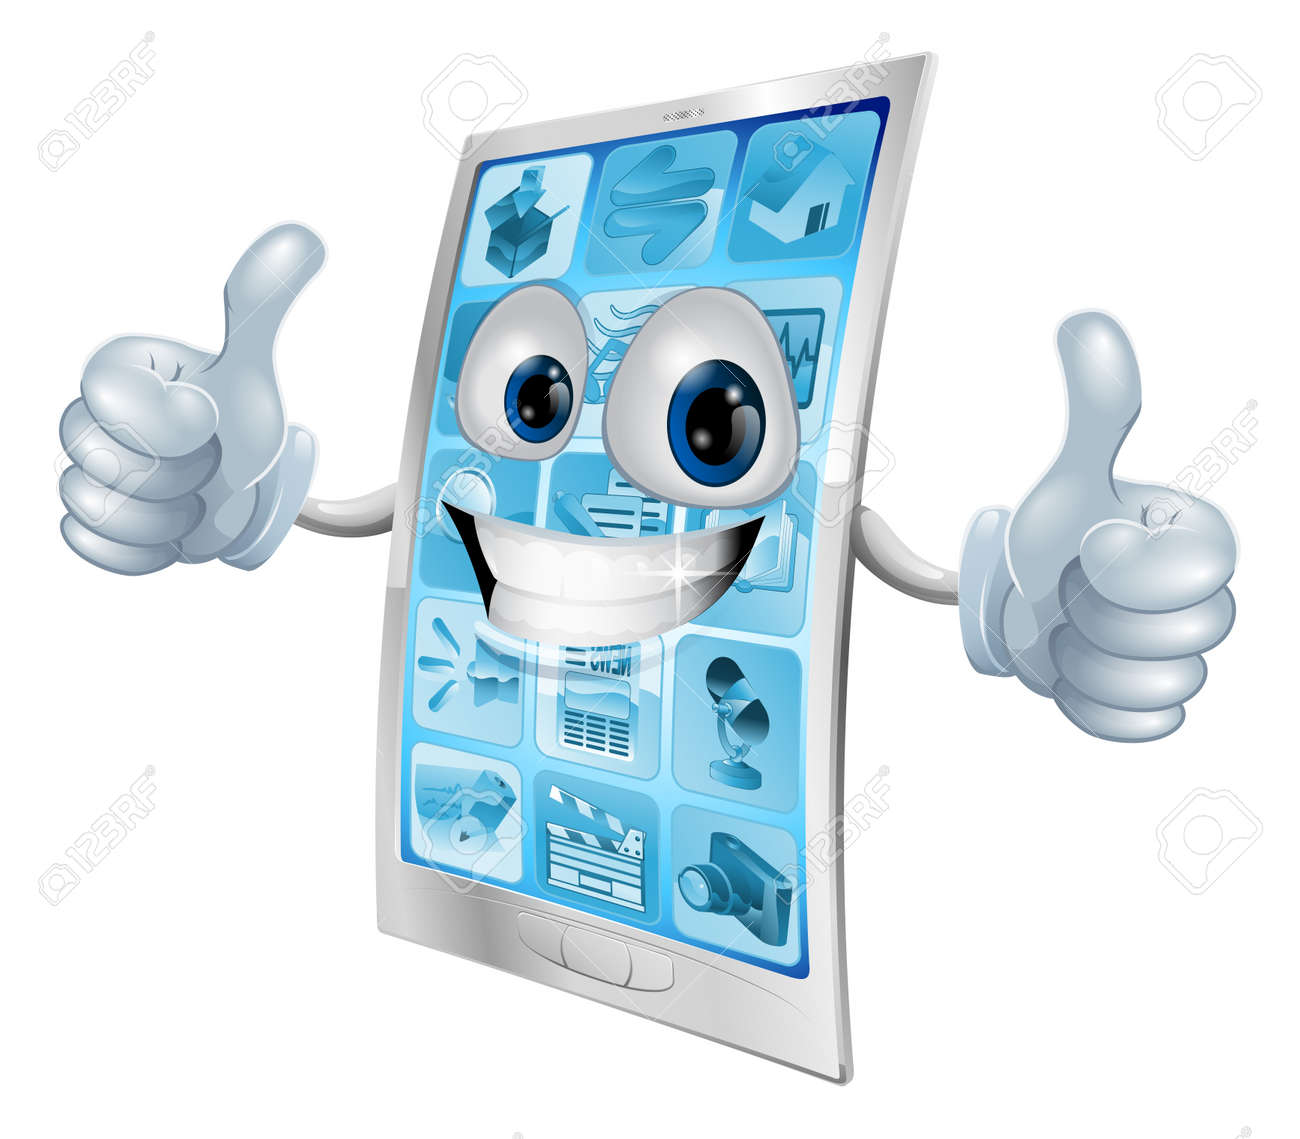 Illustration of a mobile phone mascot character doing a double thumbs up gesture - 12985698